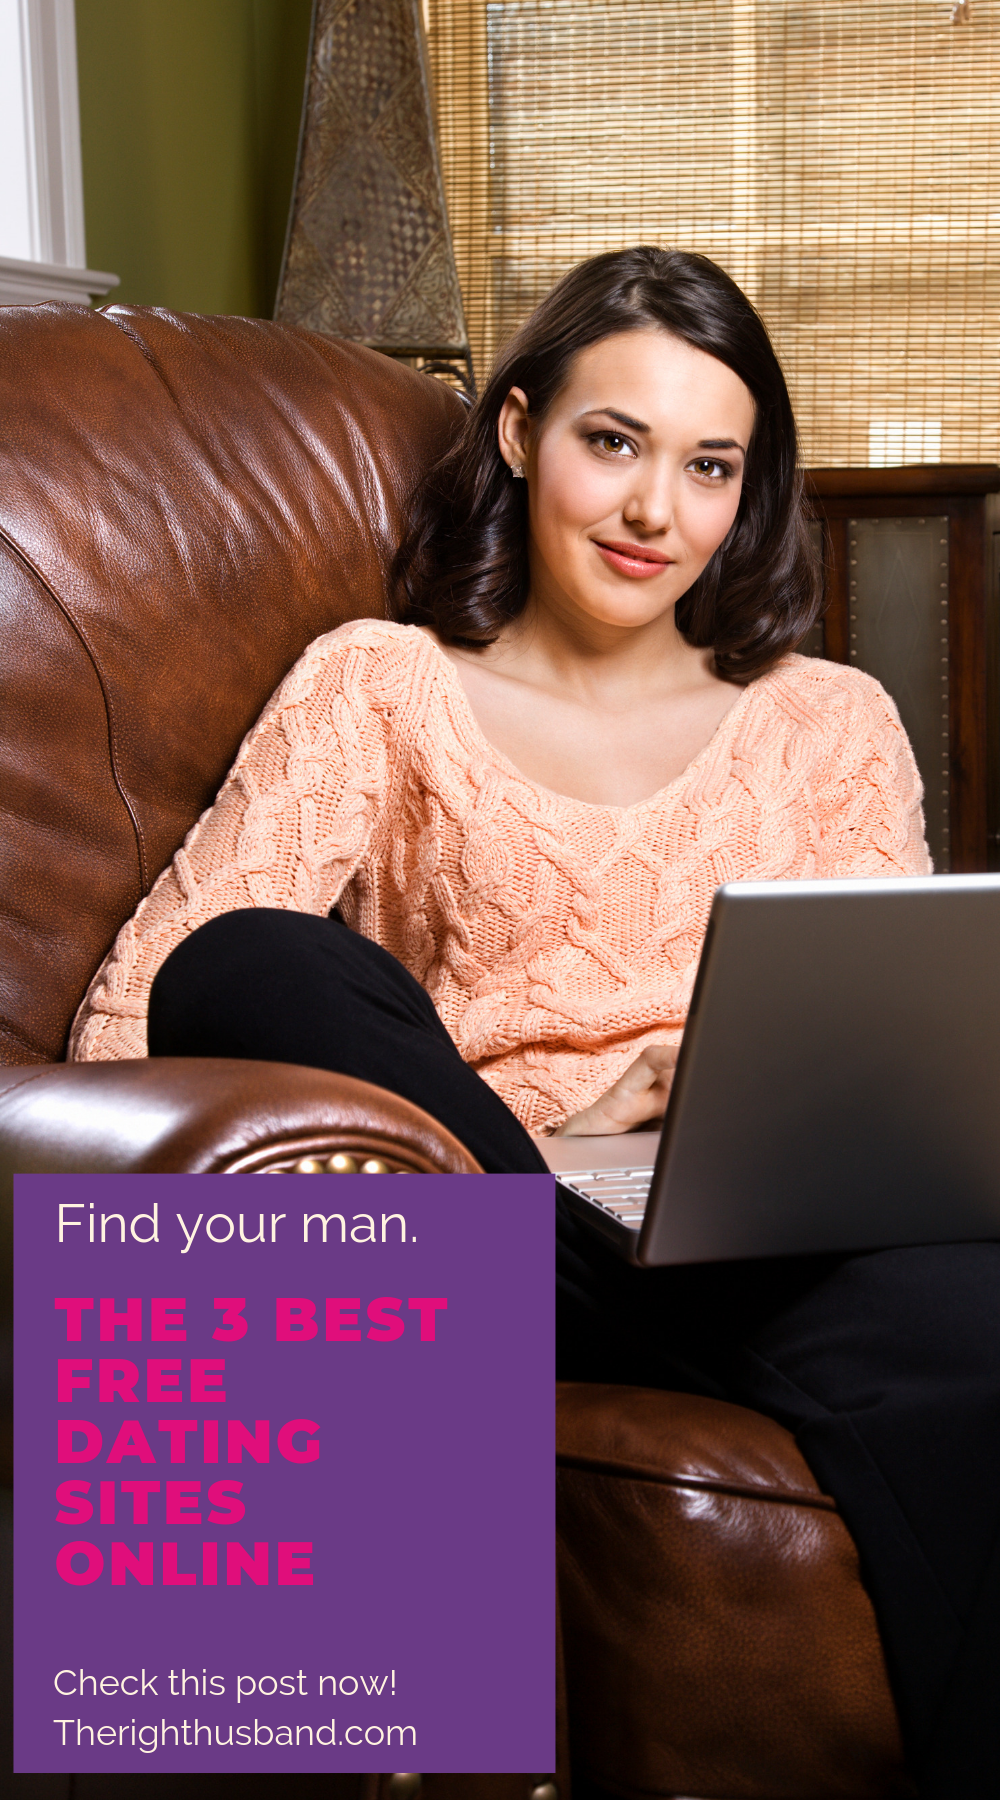 The 3 best free dating sites online